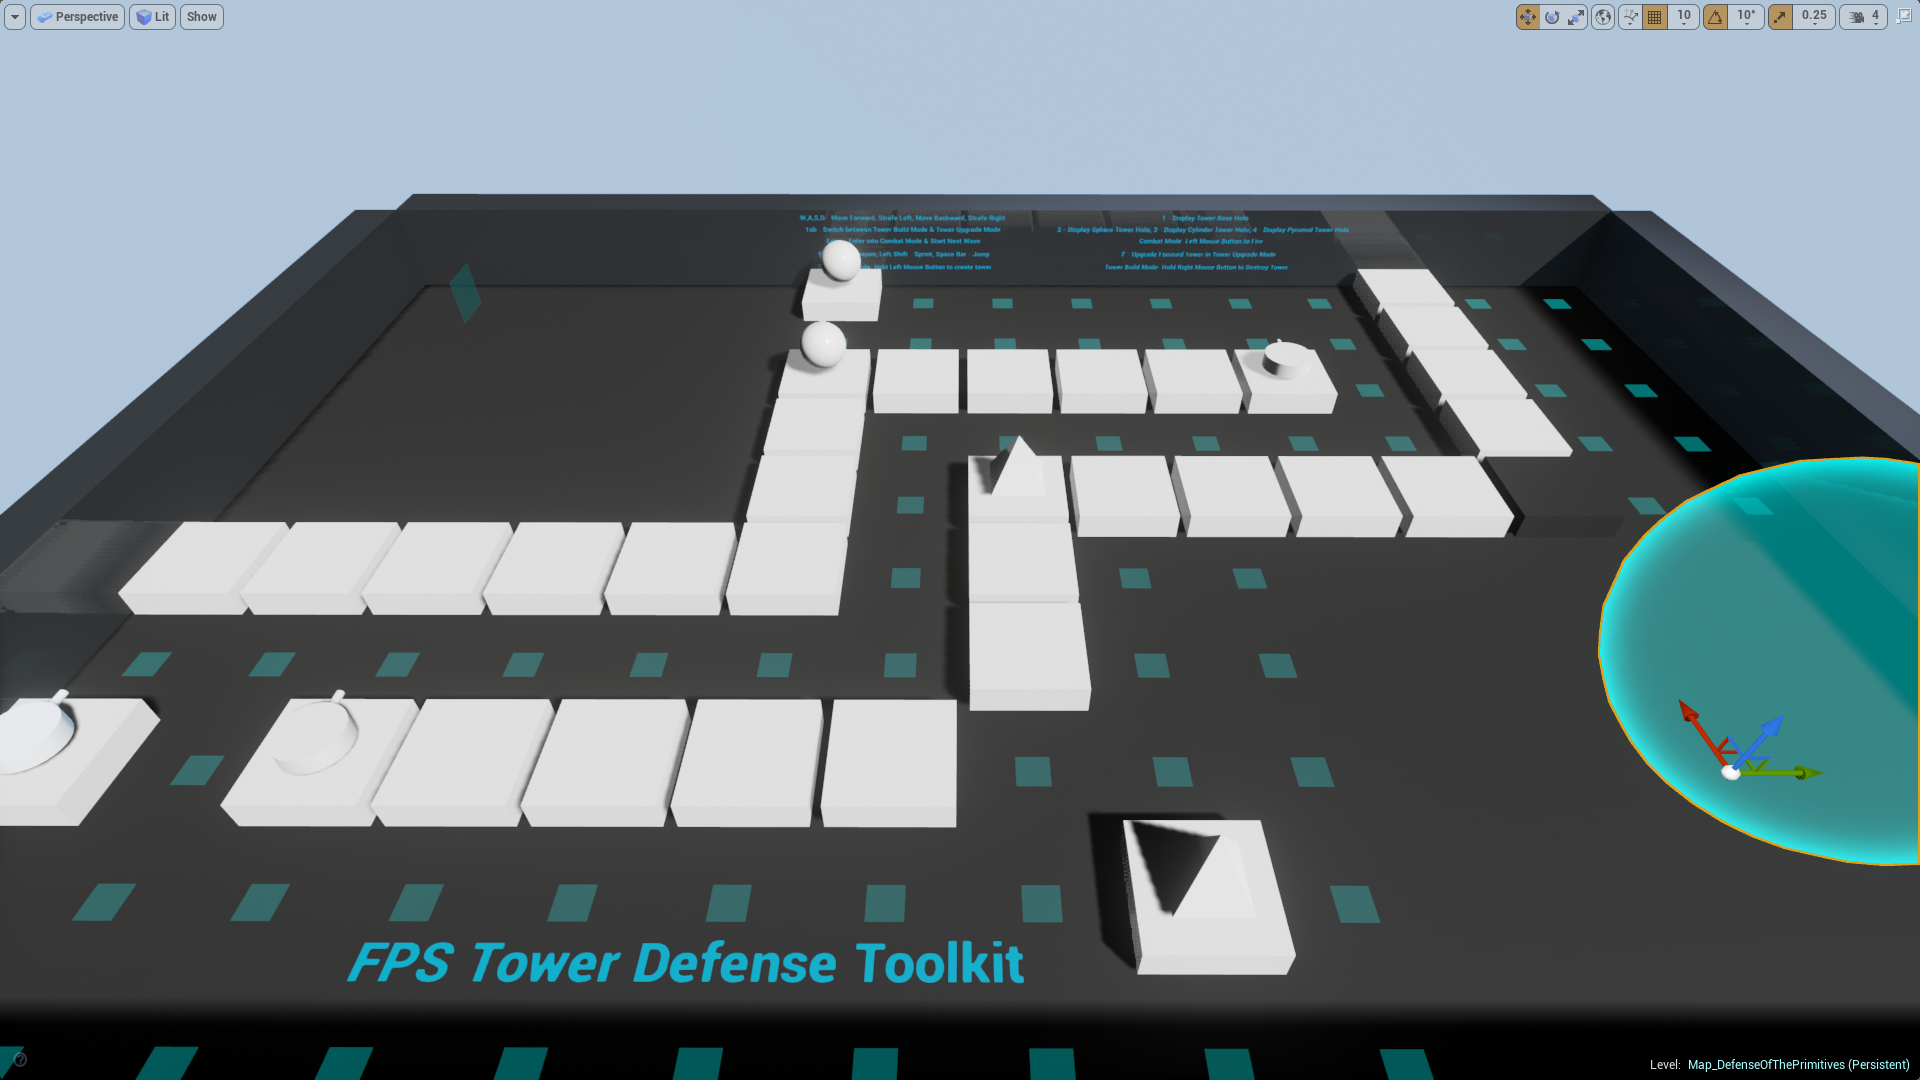 FPS Tower Defense Toolkit by Rohit Mohan